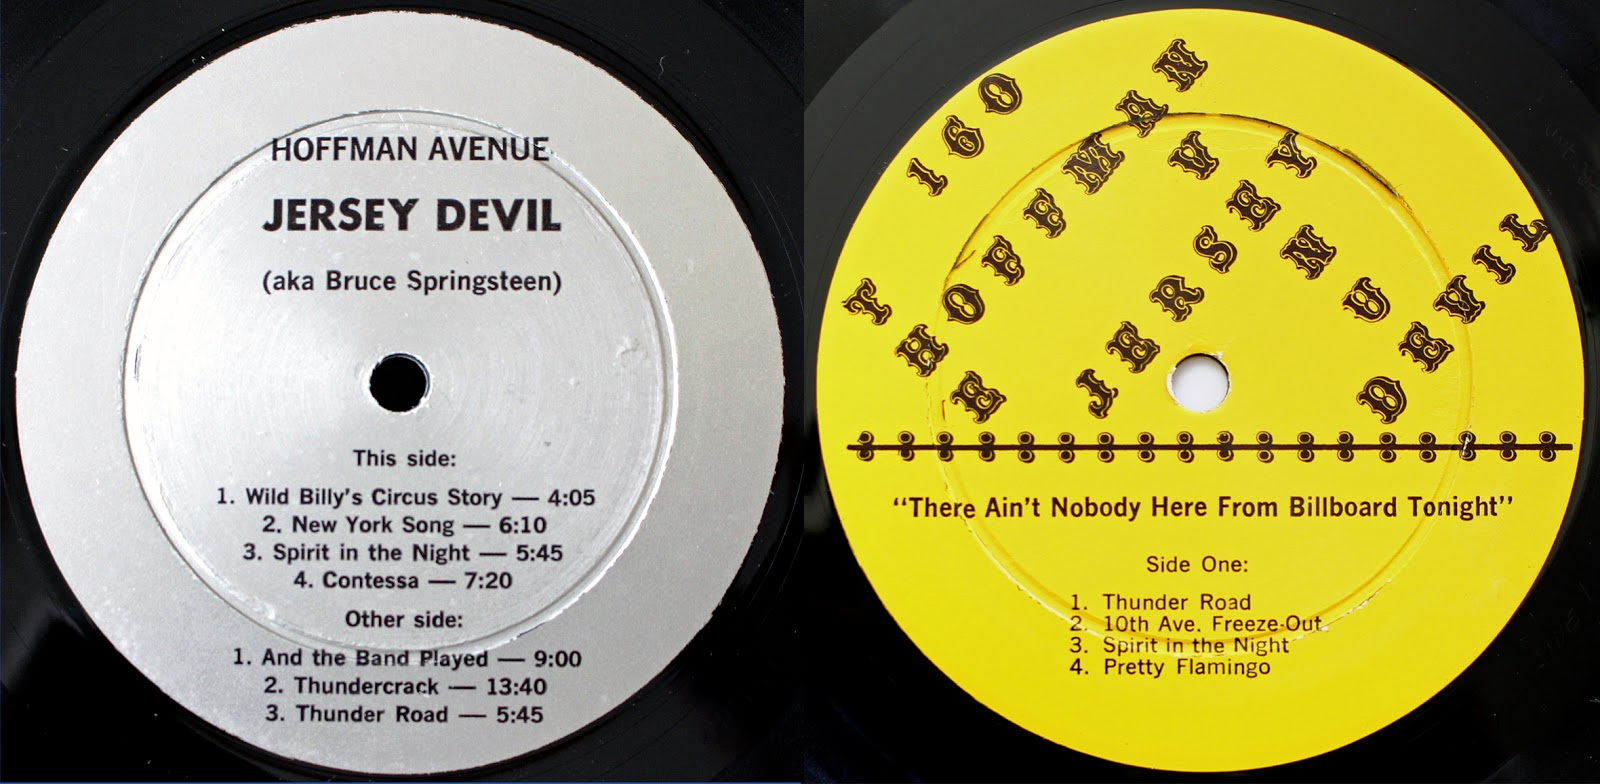 Custom record labels of the first har 147 left and second har 160 right releases from hoffman avenue records